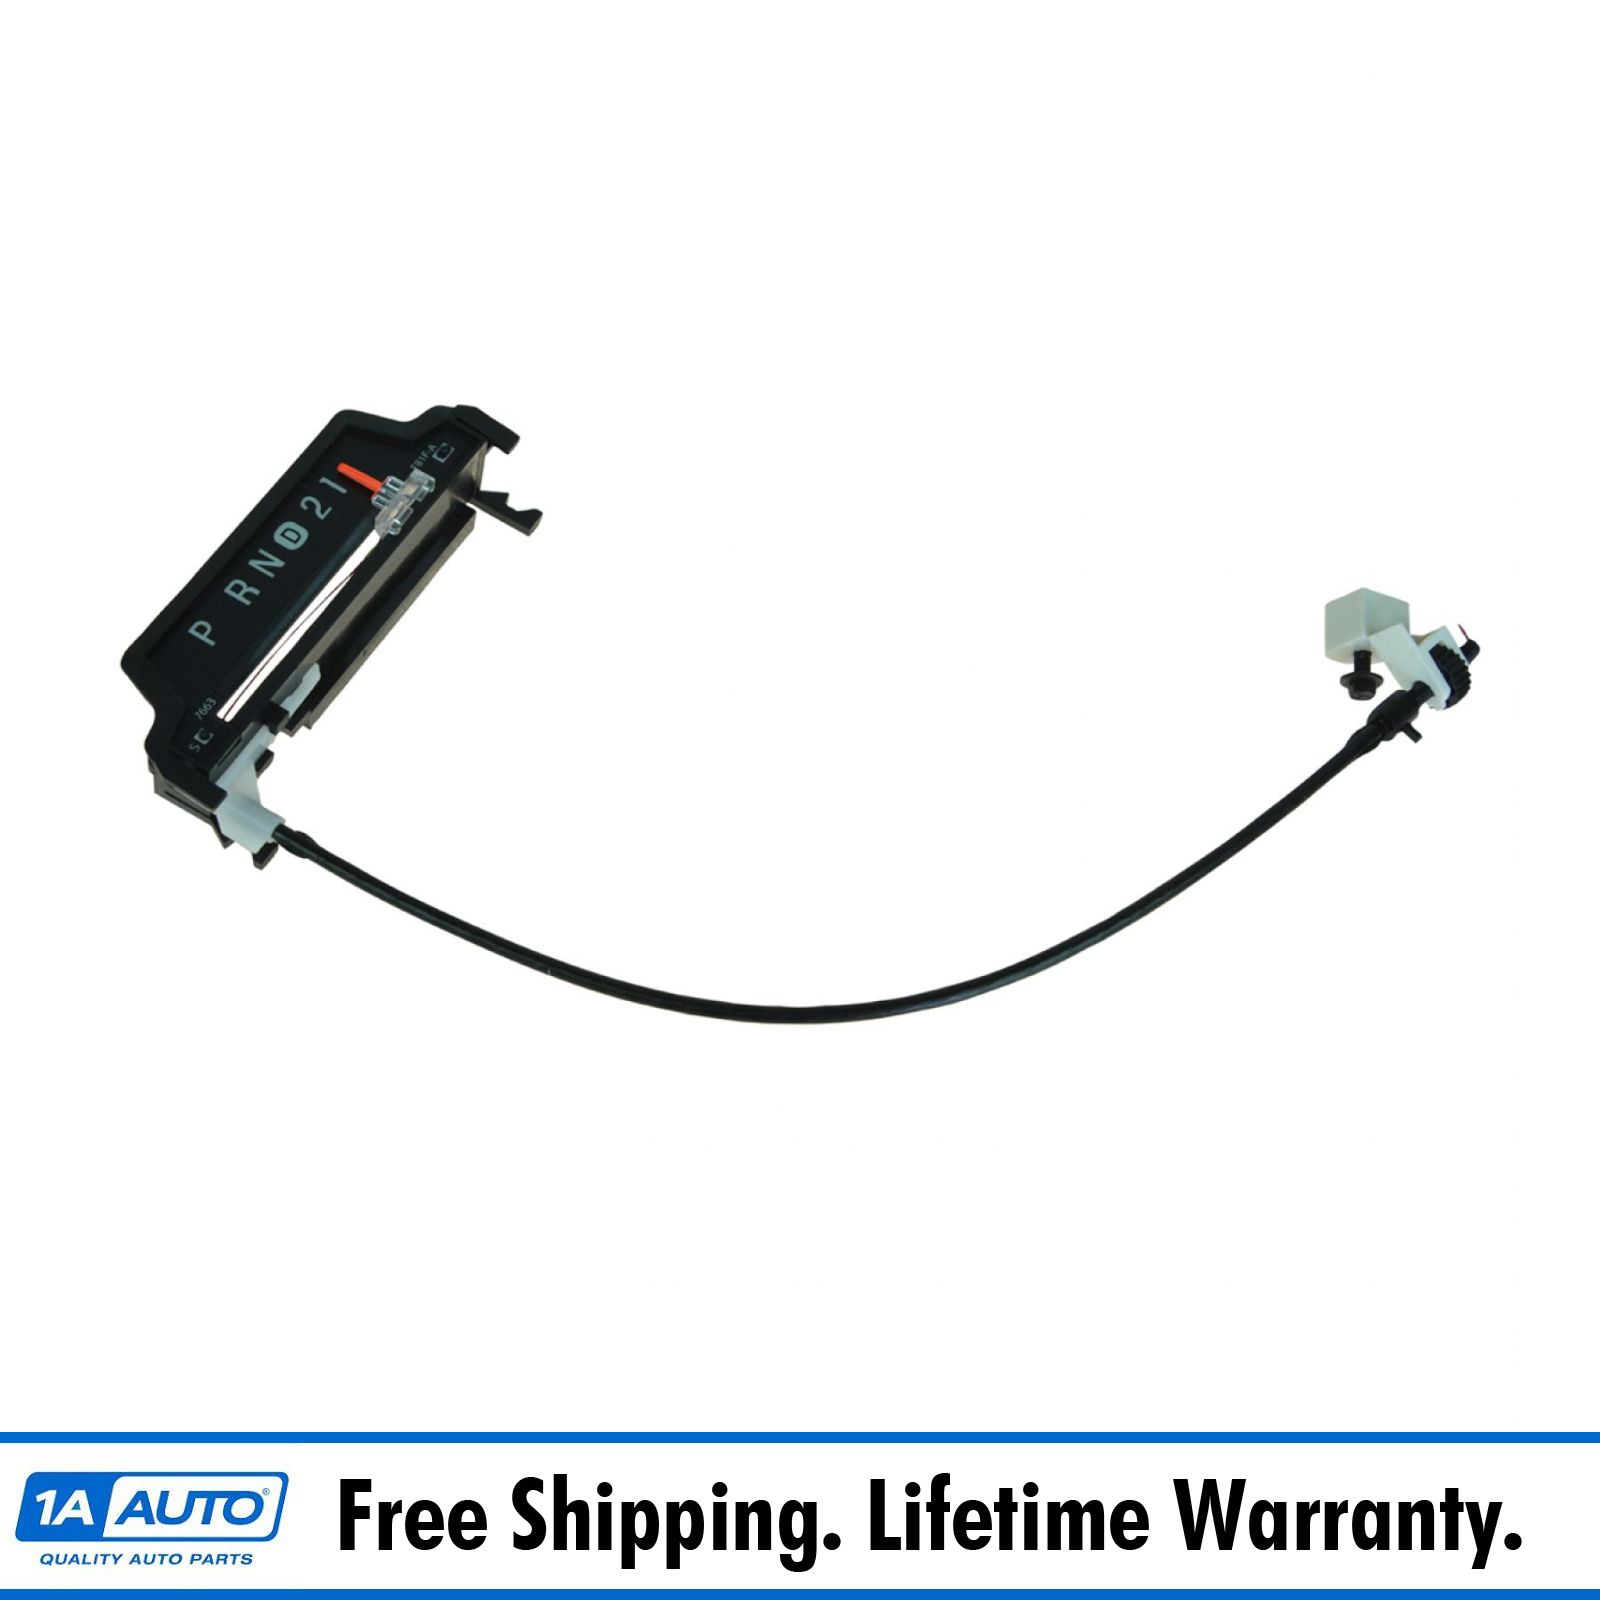 Details about OEM F81Z7A110CA Gear Shift Level Indicator for Ford Excursion  Super Duty New